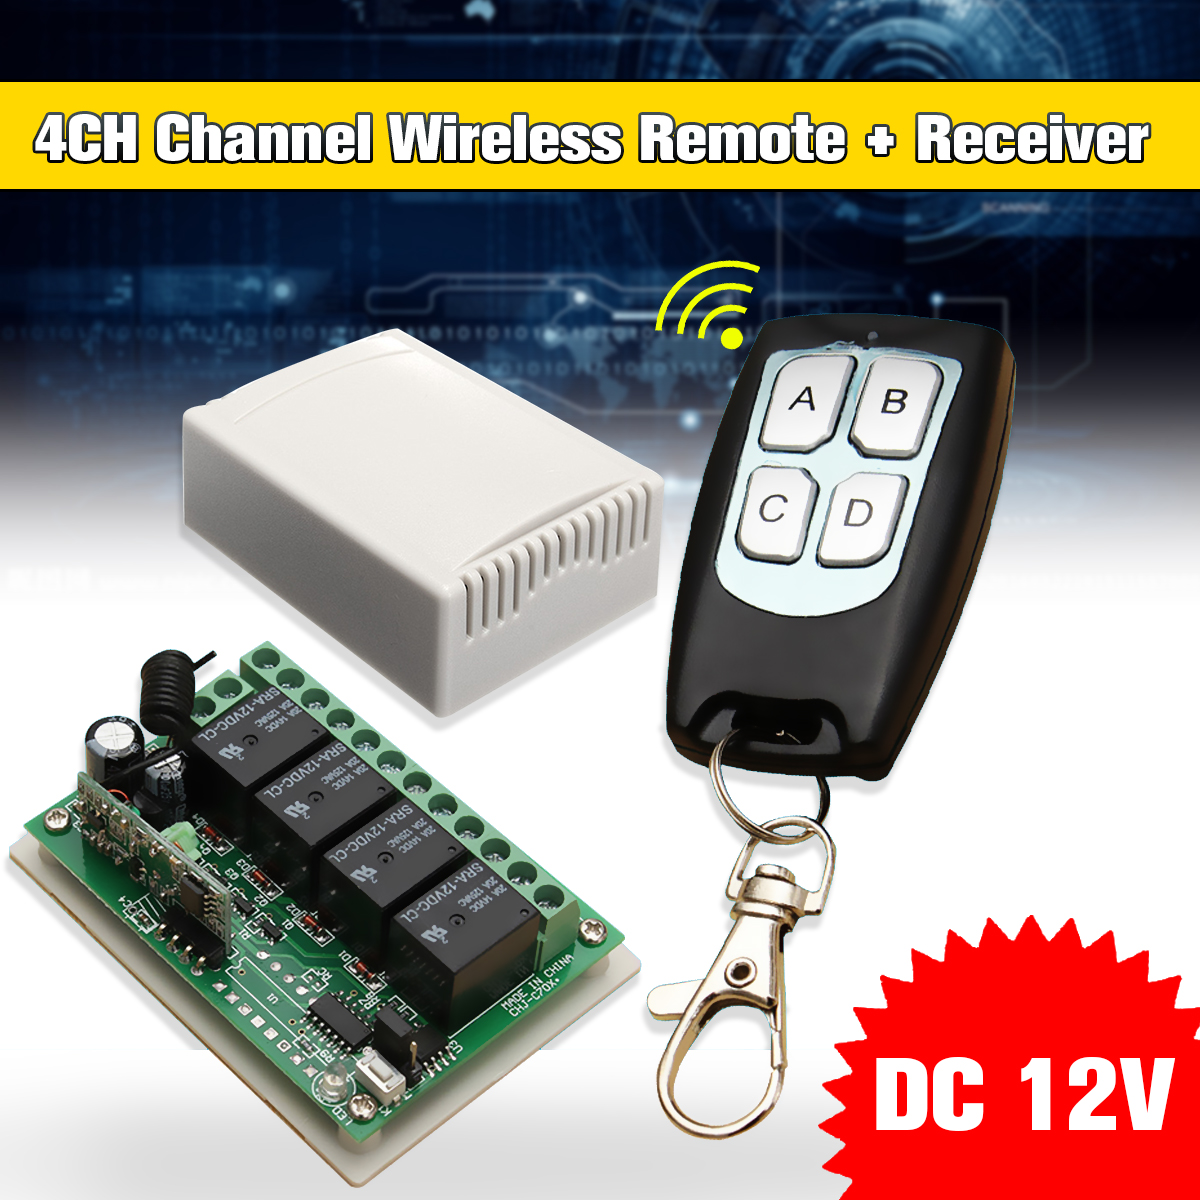 200m DC 12V 4CH Wireless Remote Control Controller Radio Switch 433mhz Transmitter Receiver High Sensitivity купить в Москве 2019